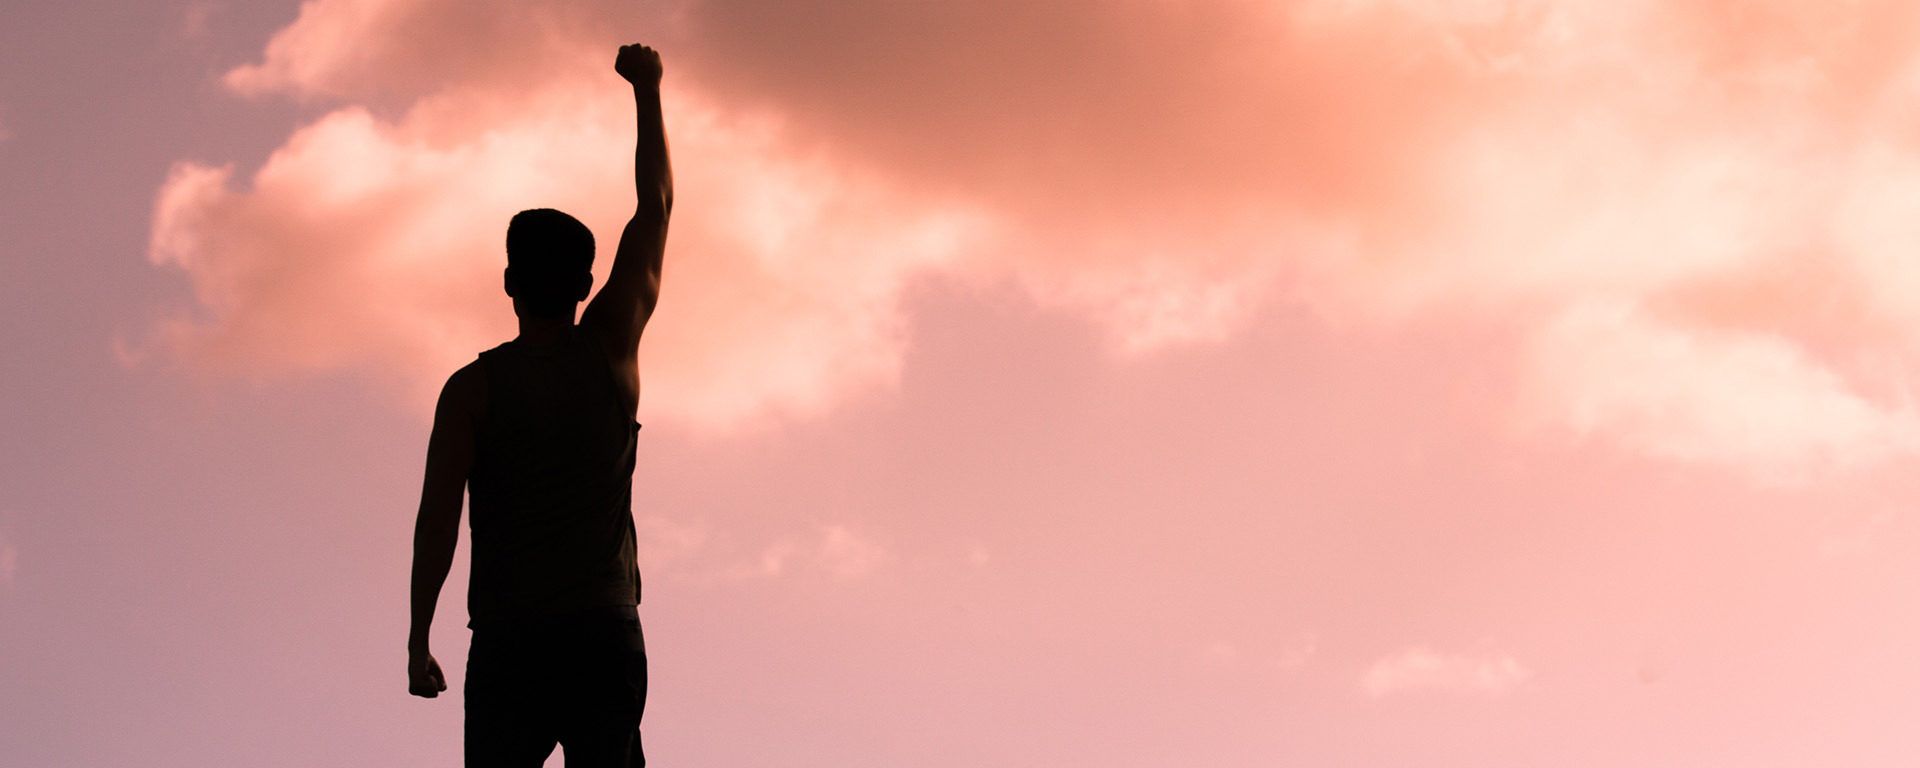 silhouette of man with arm/fist in the air